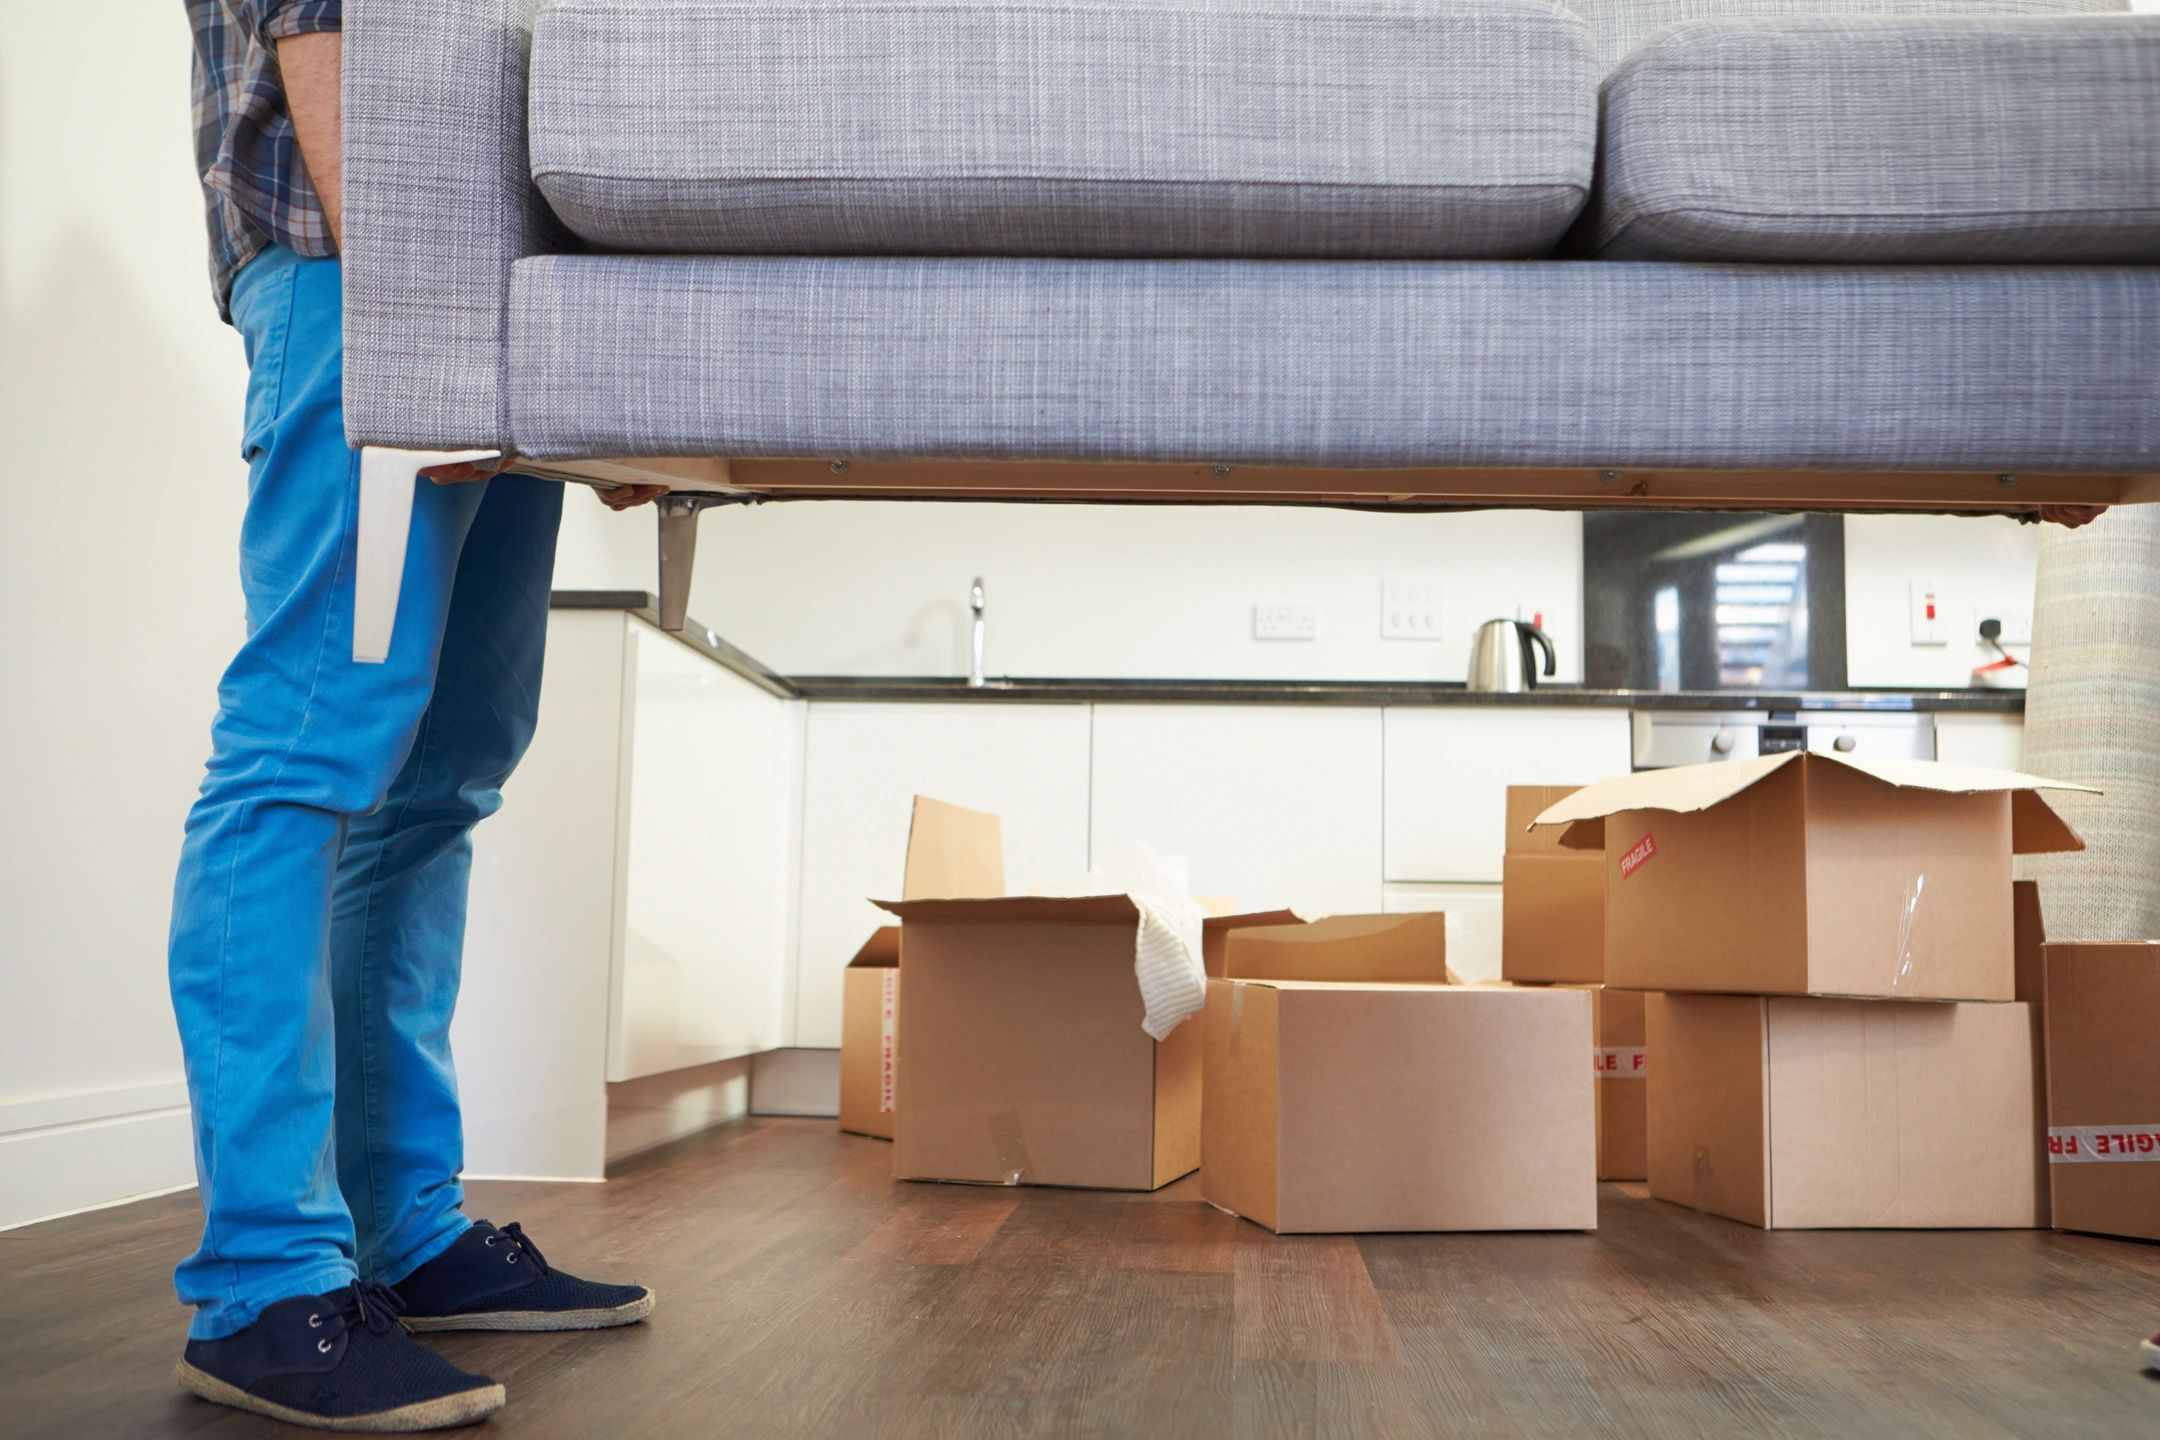 Man lifting couch with packed boxes in background